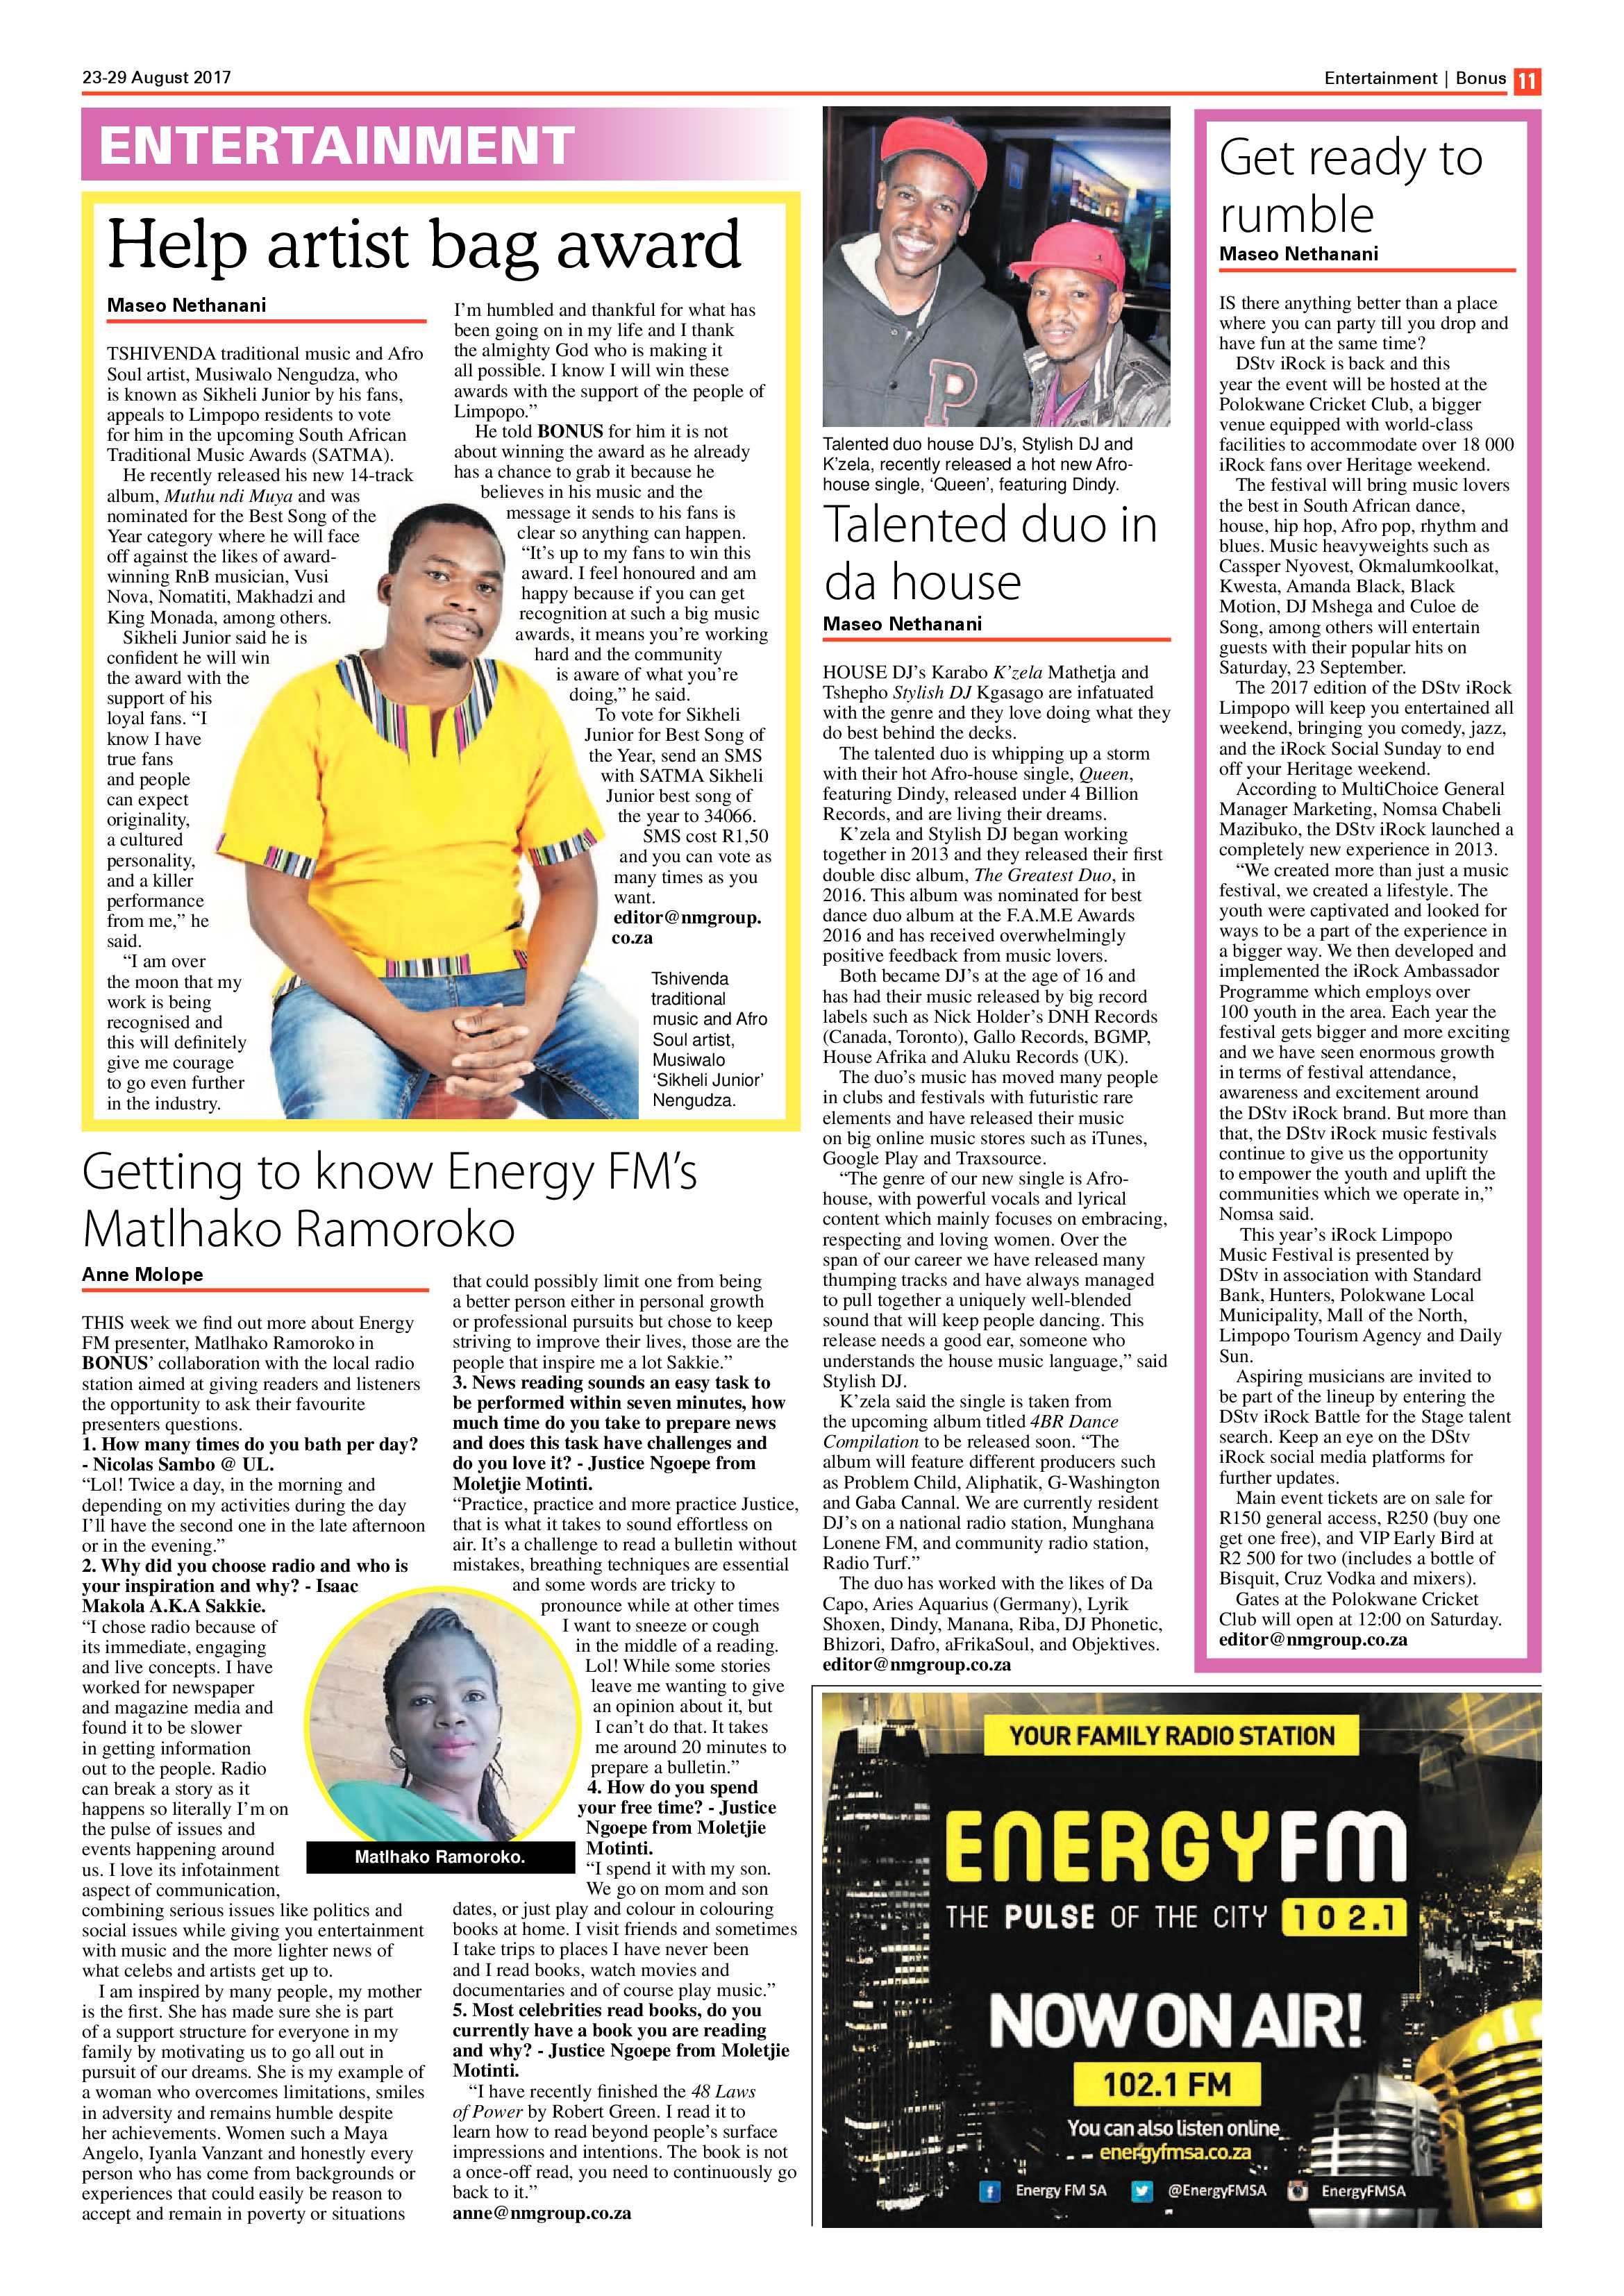 review-bonus-23-august-2017-epapers-page-11